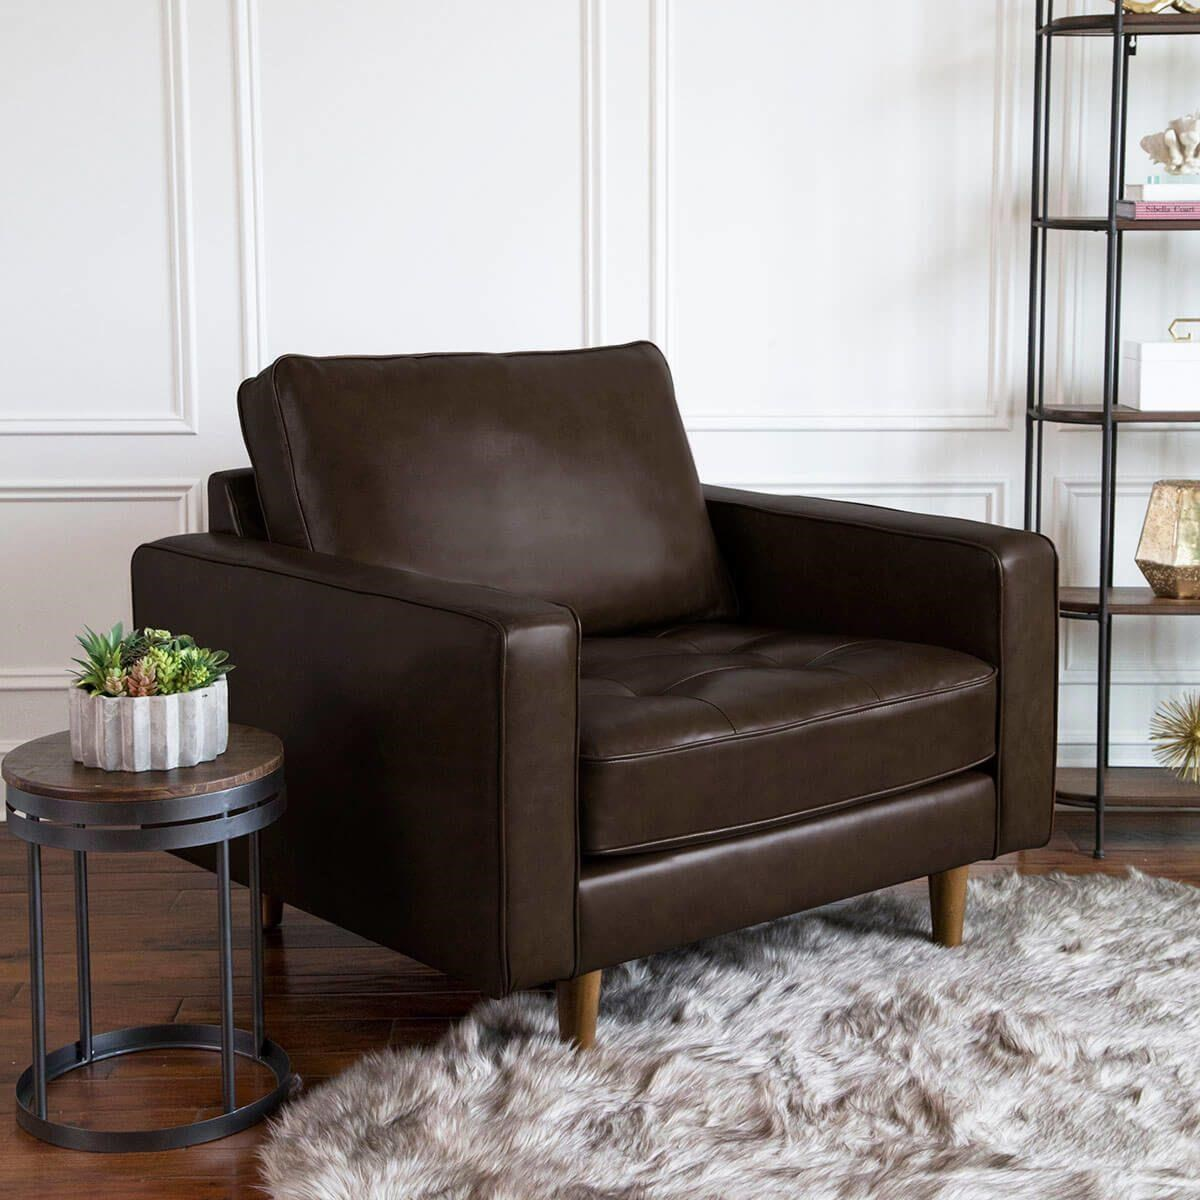 Francine Francine Top Grain Leather Suit Chair by Abbyson at Morris Home